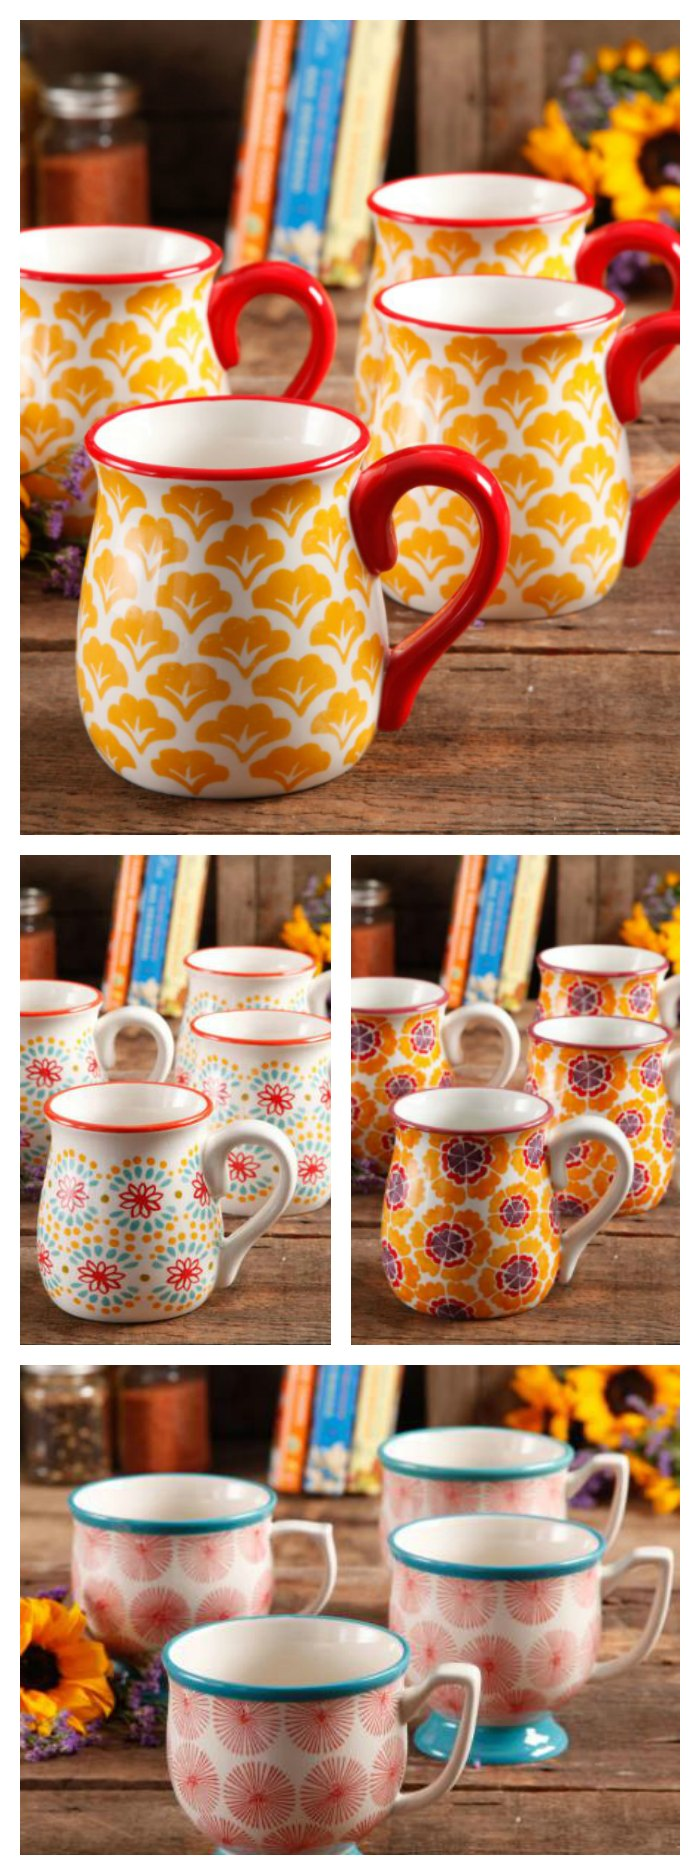 15 Ounce Pioneer Woman Coffee Cups are perfect for coffee, tea or any hot beverage. So pretty and yet so useful. What is your favorite color?